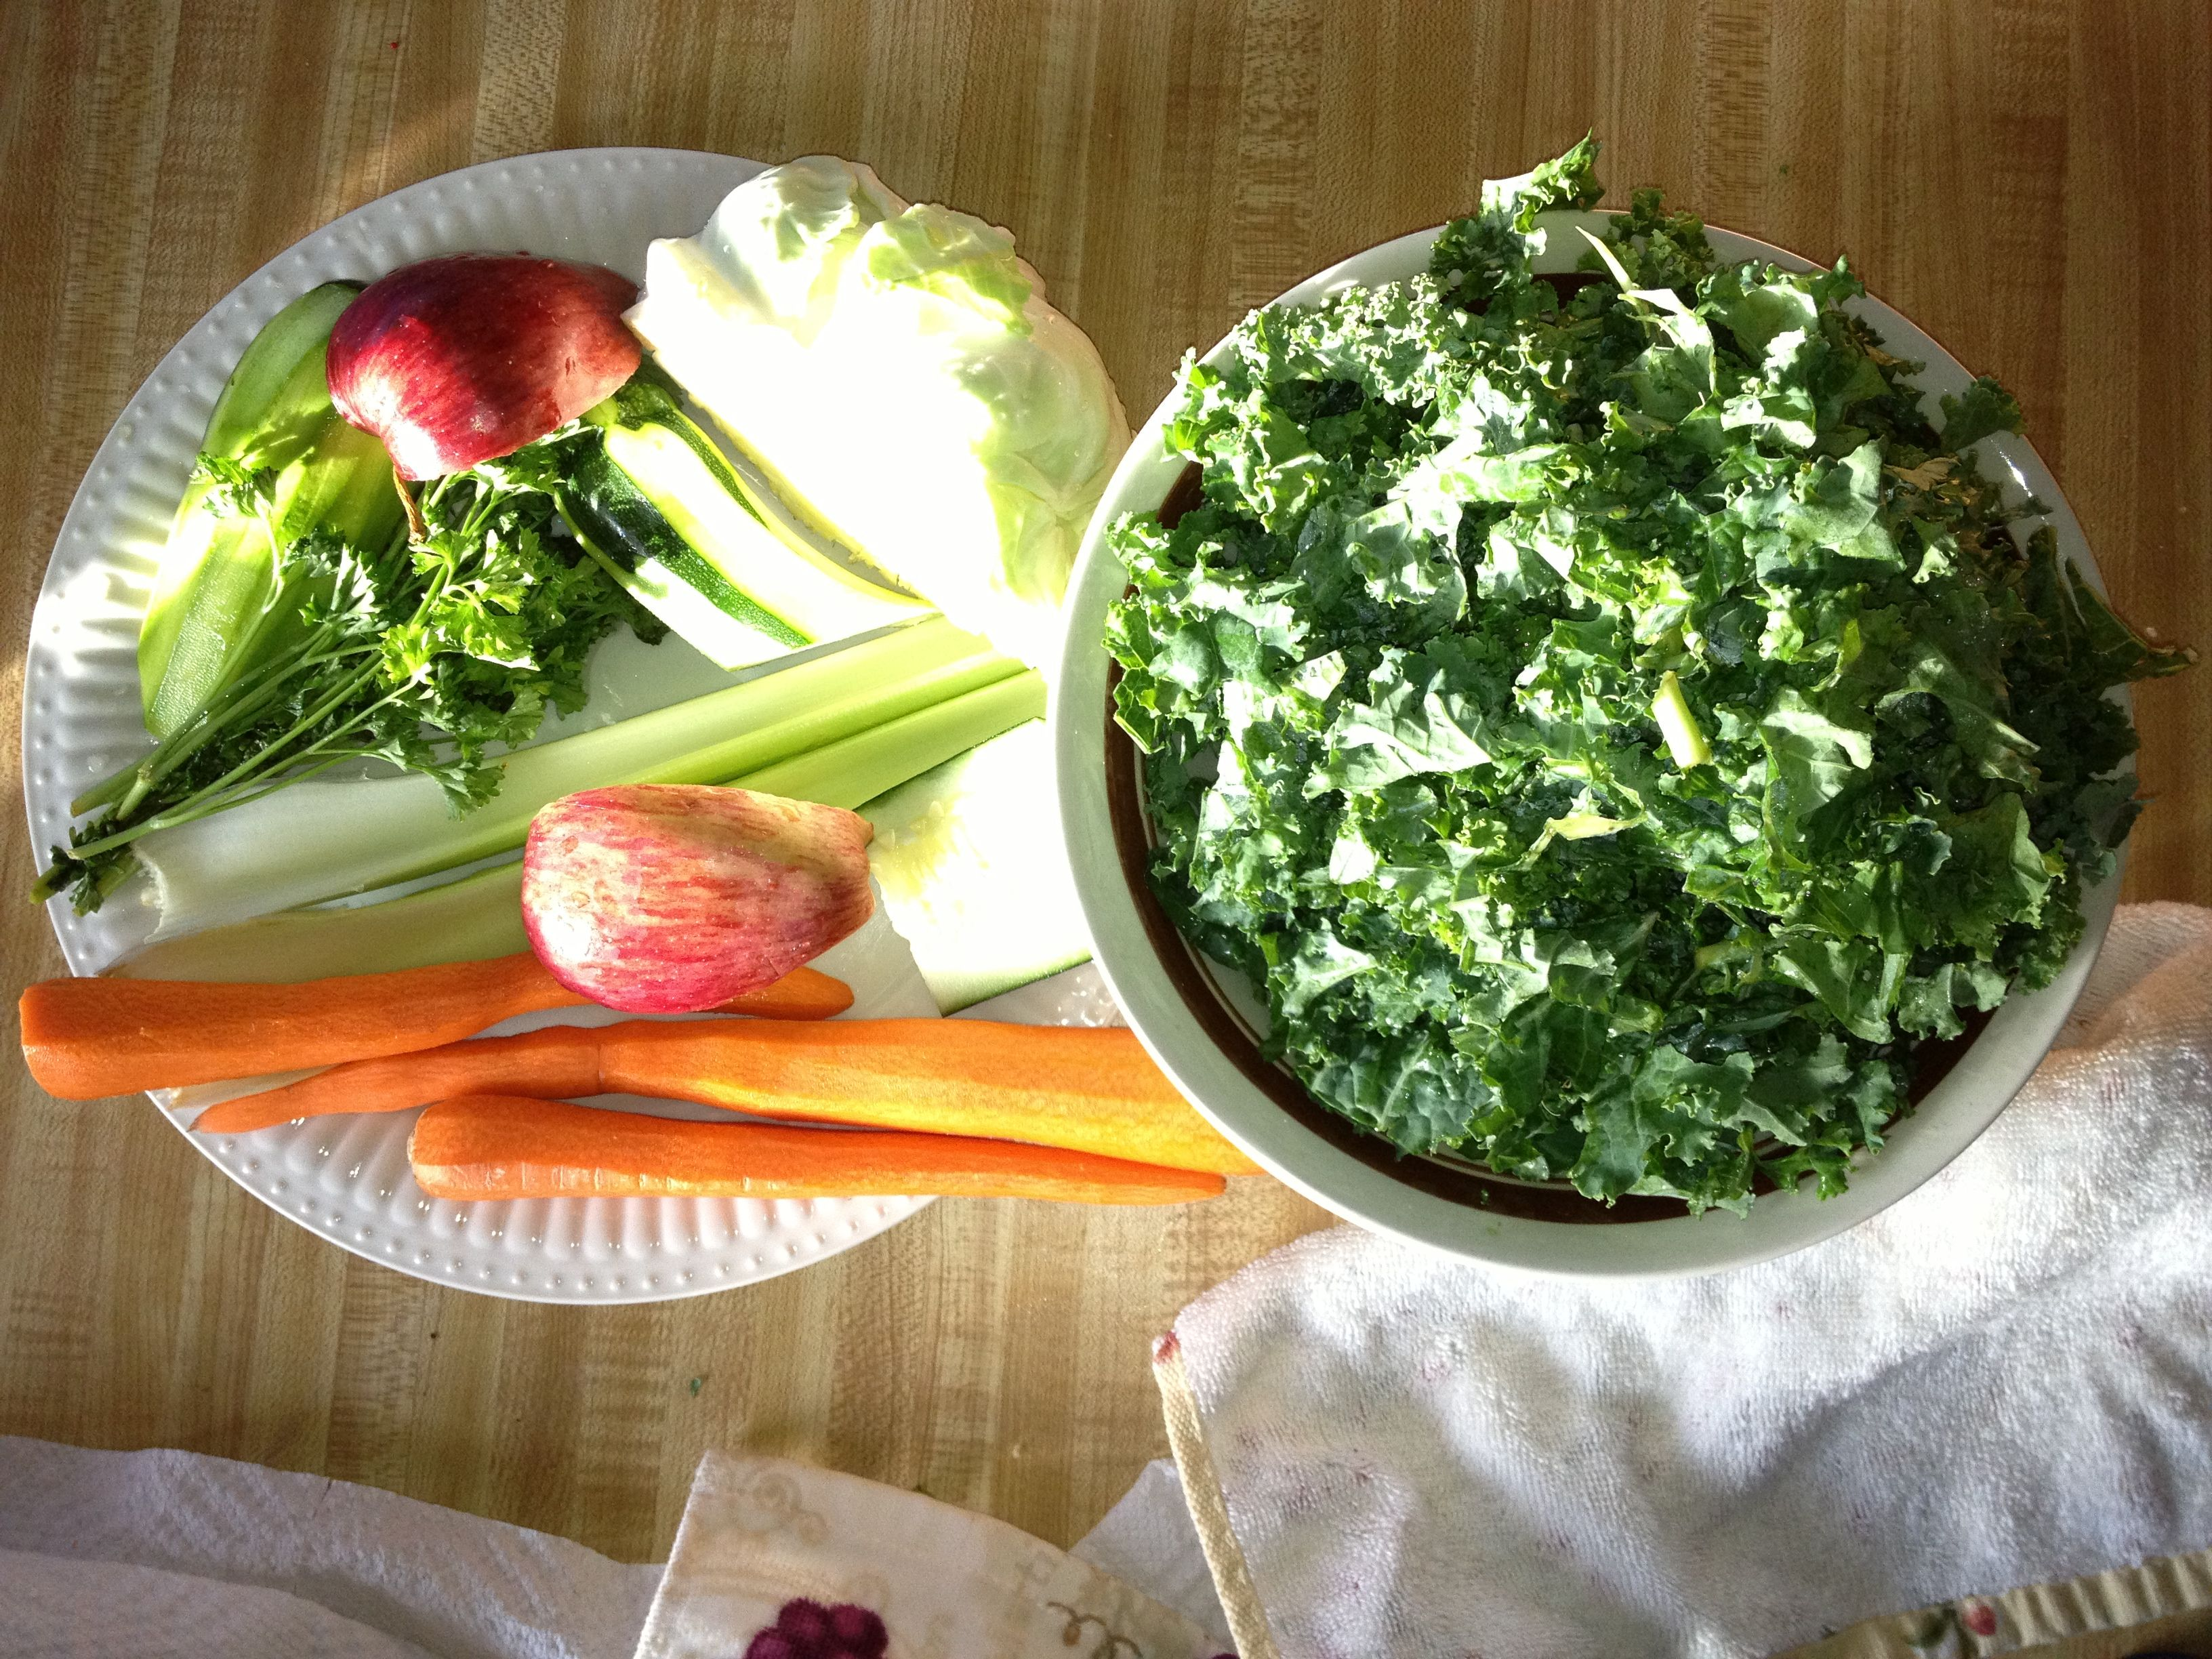 Ingredients for My first veggie juice made